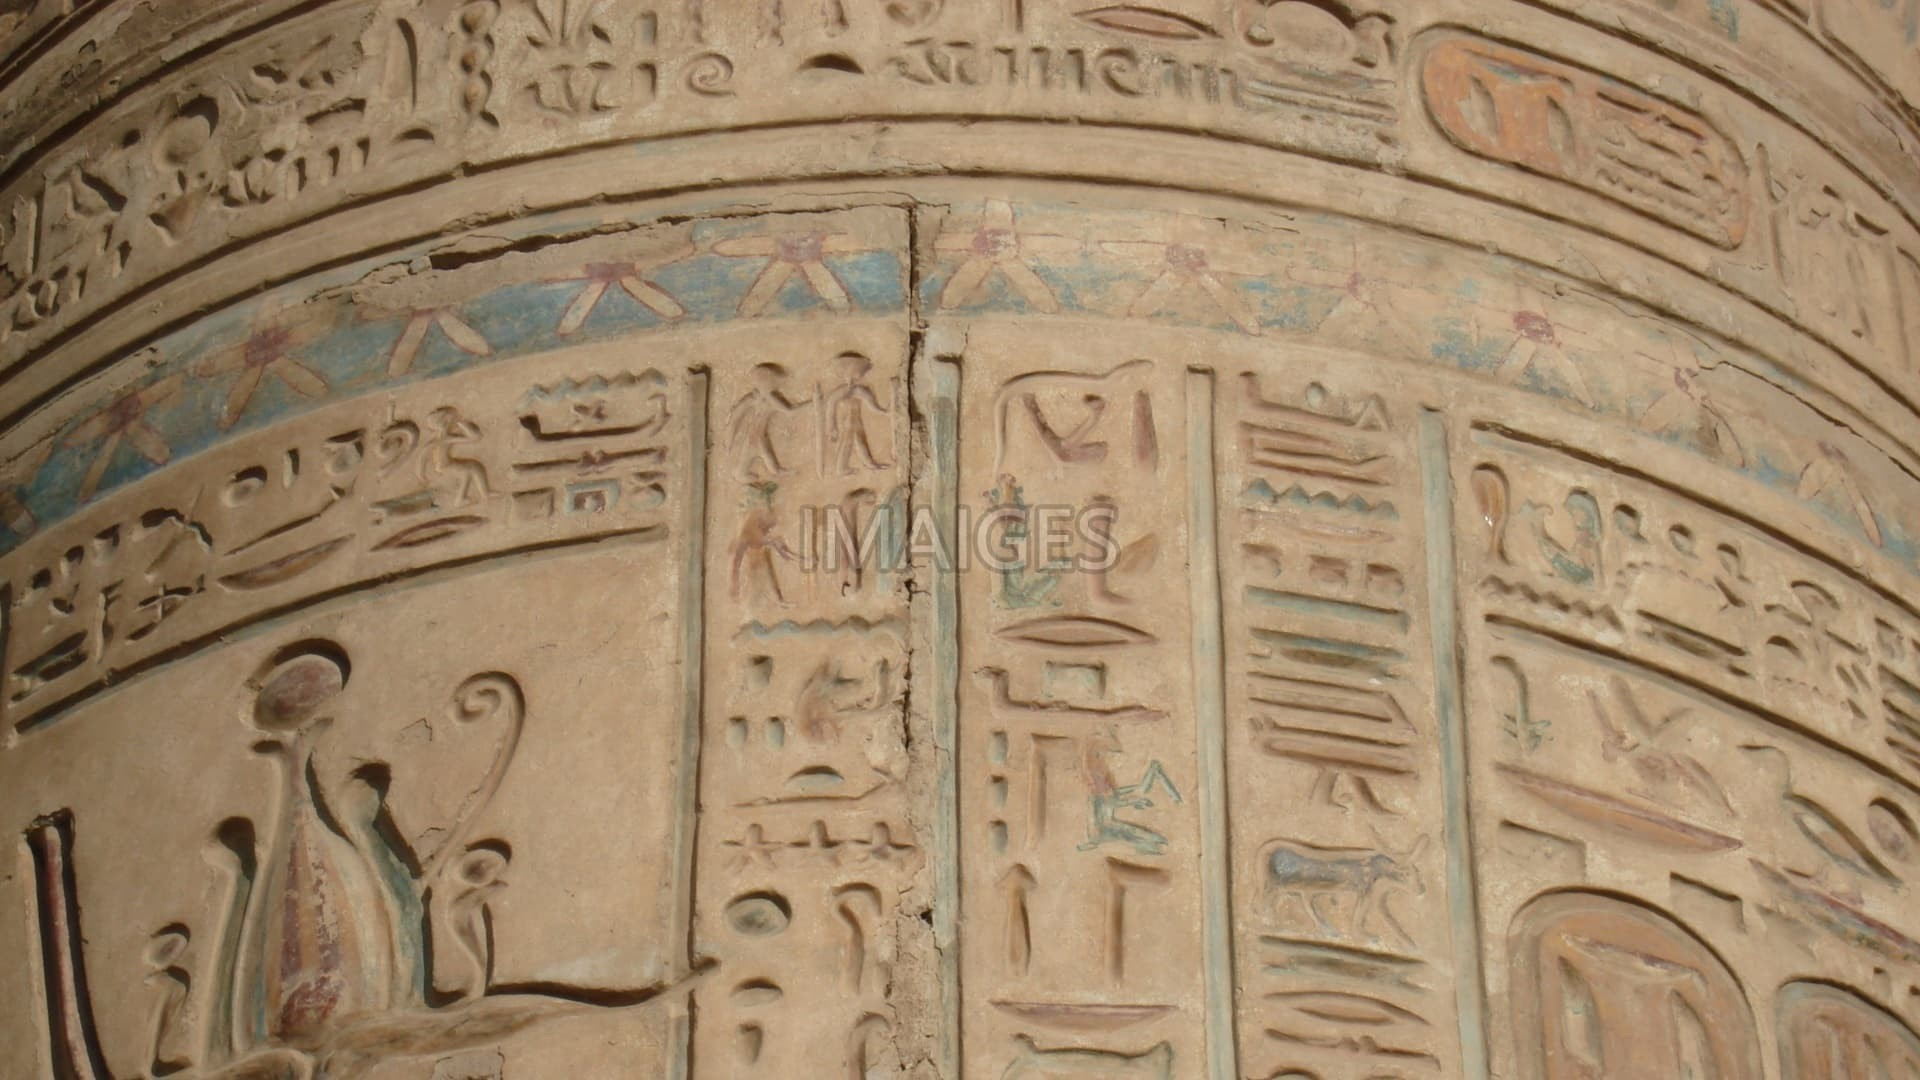 3d Wallpapers Desktop Free Download Animation Windows 7 Egyptian Hieroglyphics Wallpaper 183 ① Wallpapertag